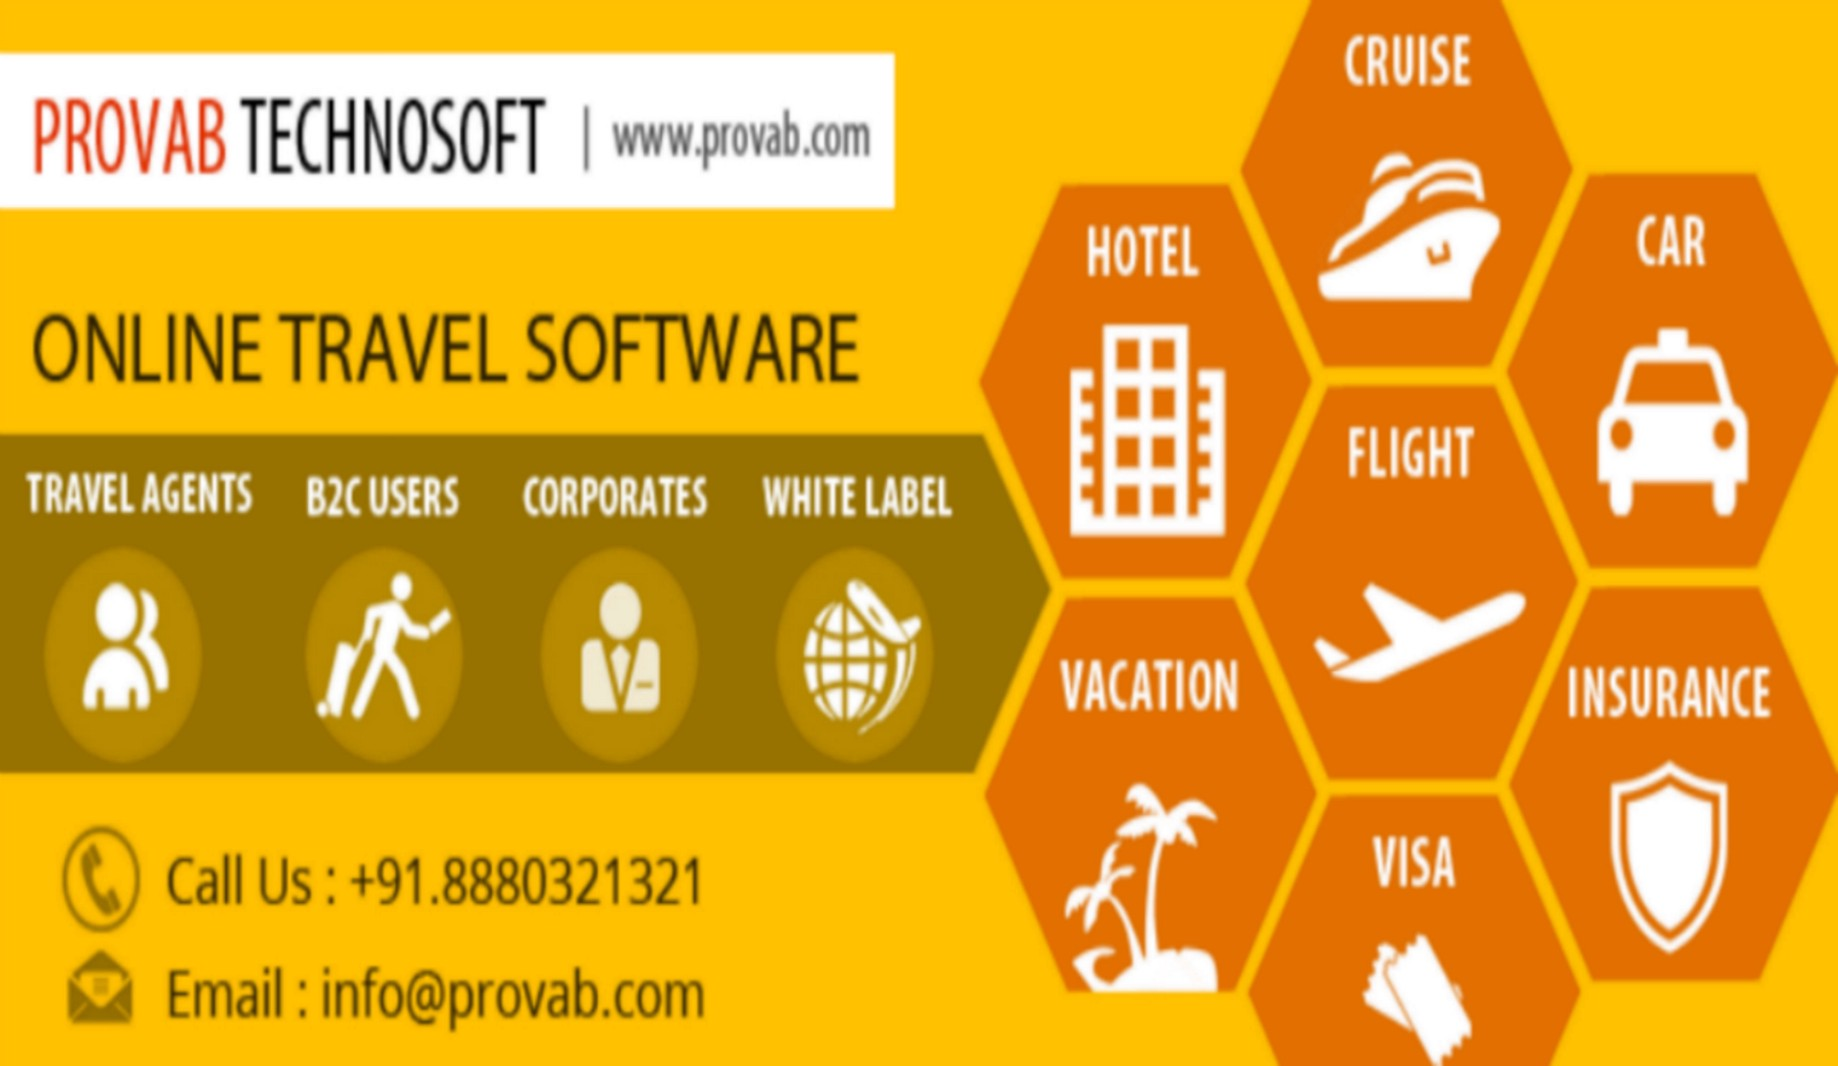 Twitter and facebook integration helping travel agency websites